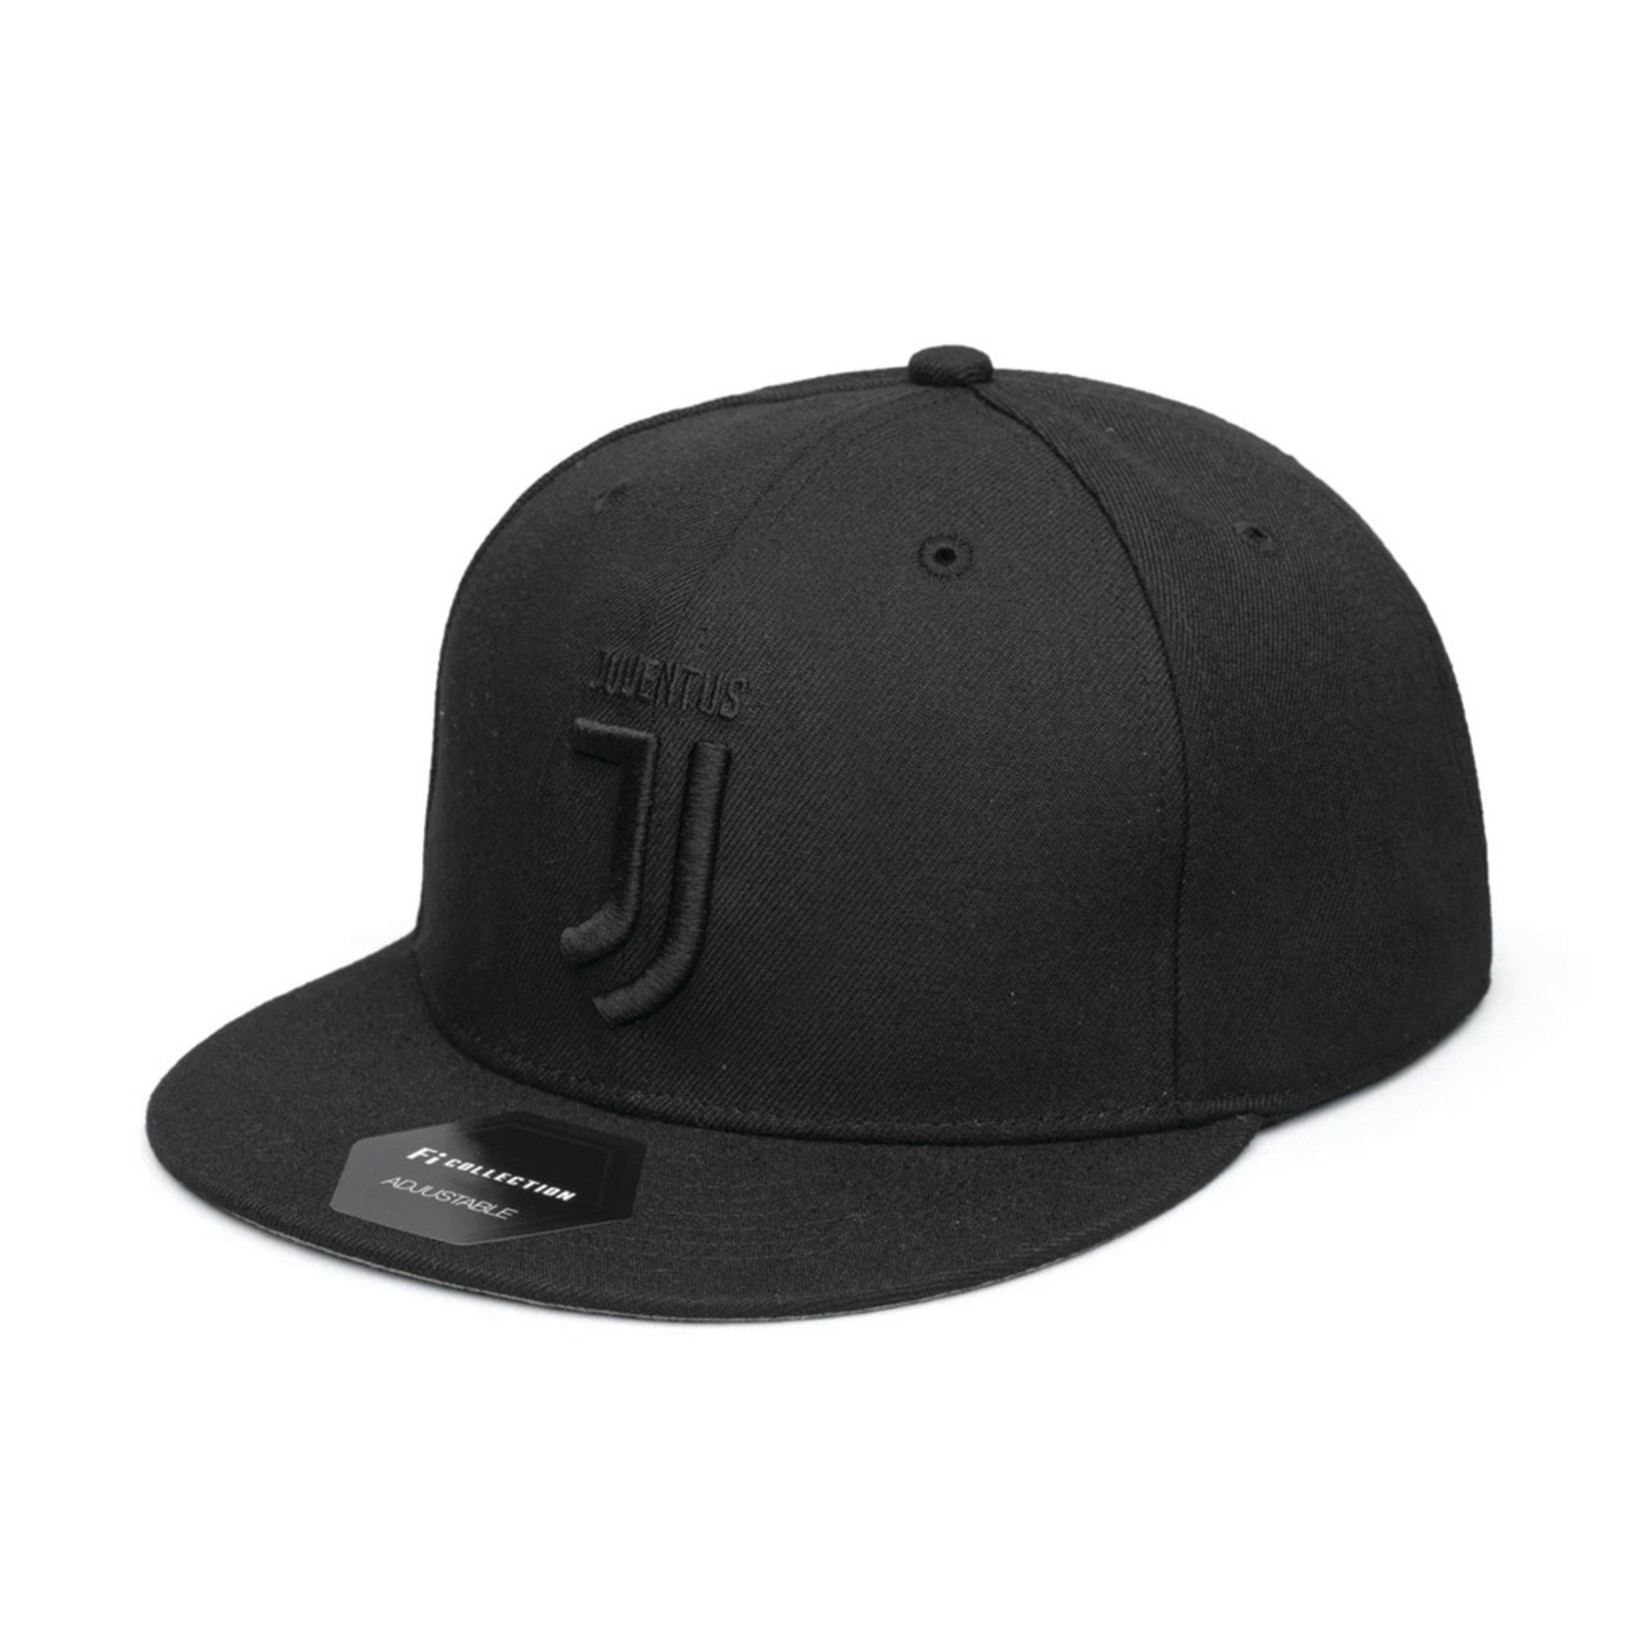 FAN INK JUVENTUS DUSK SNAPBACK HAT